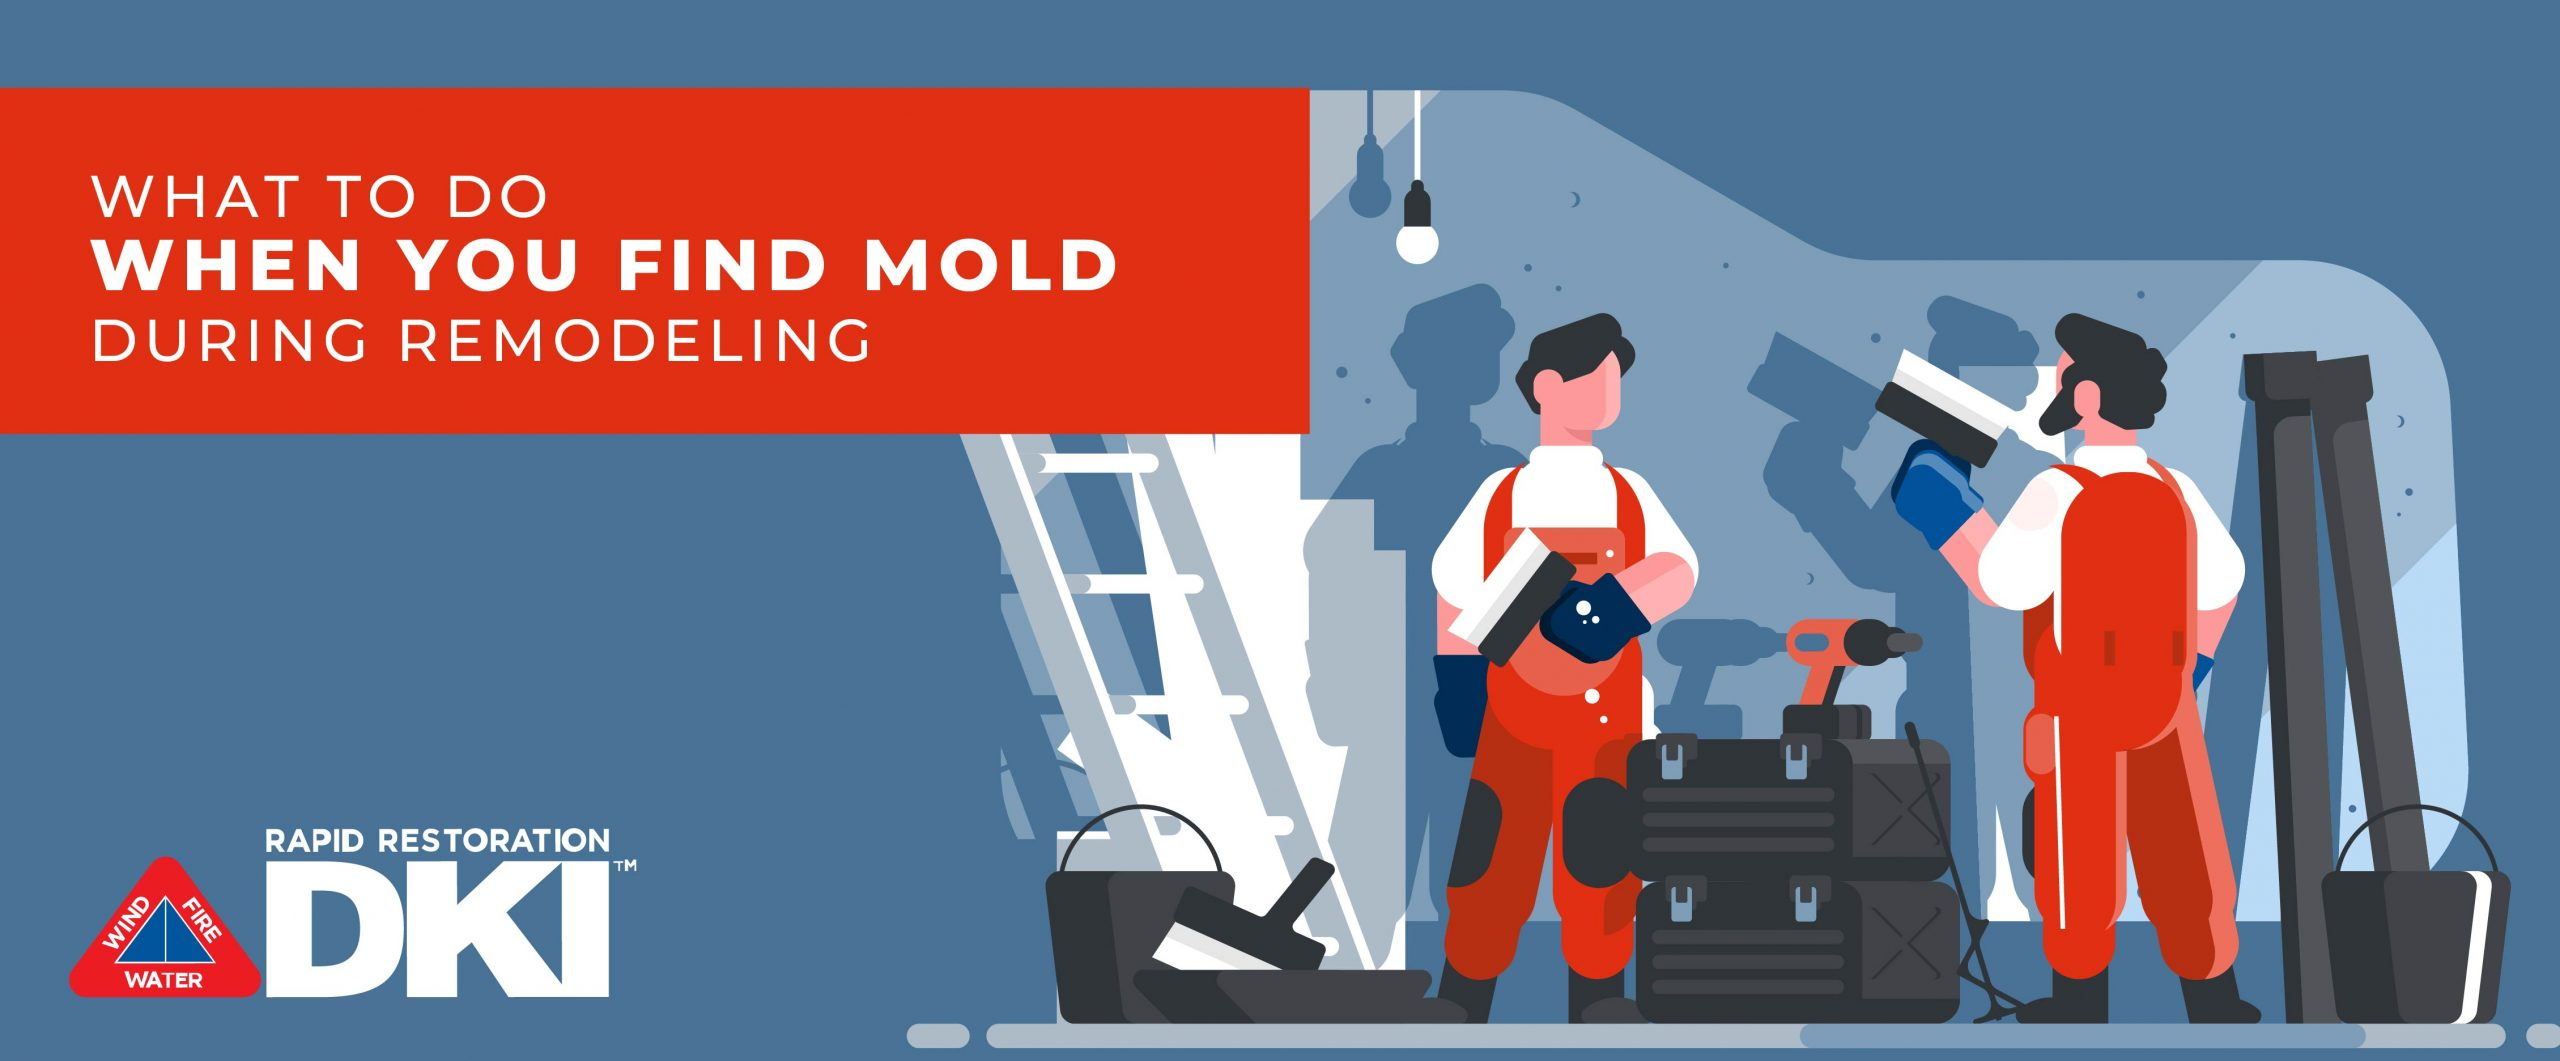 remodeling and mold